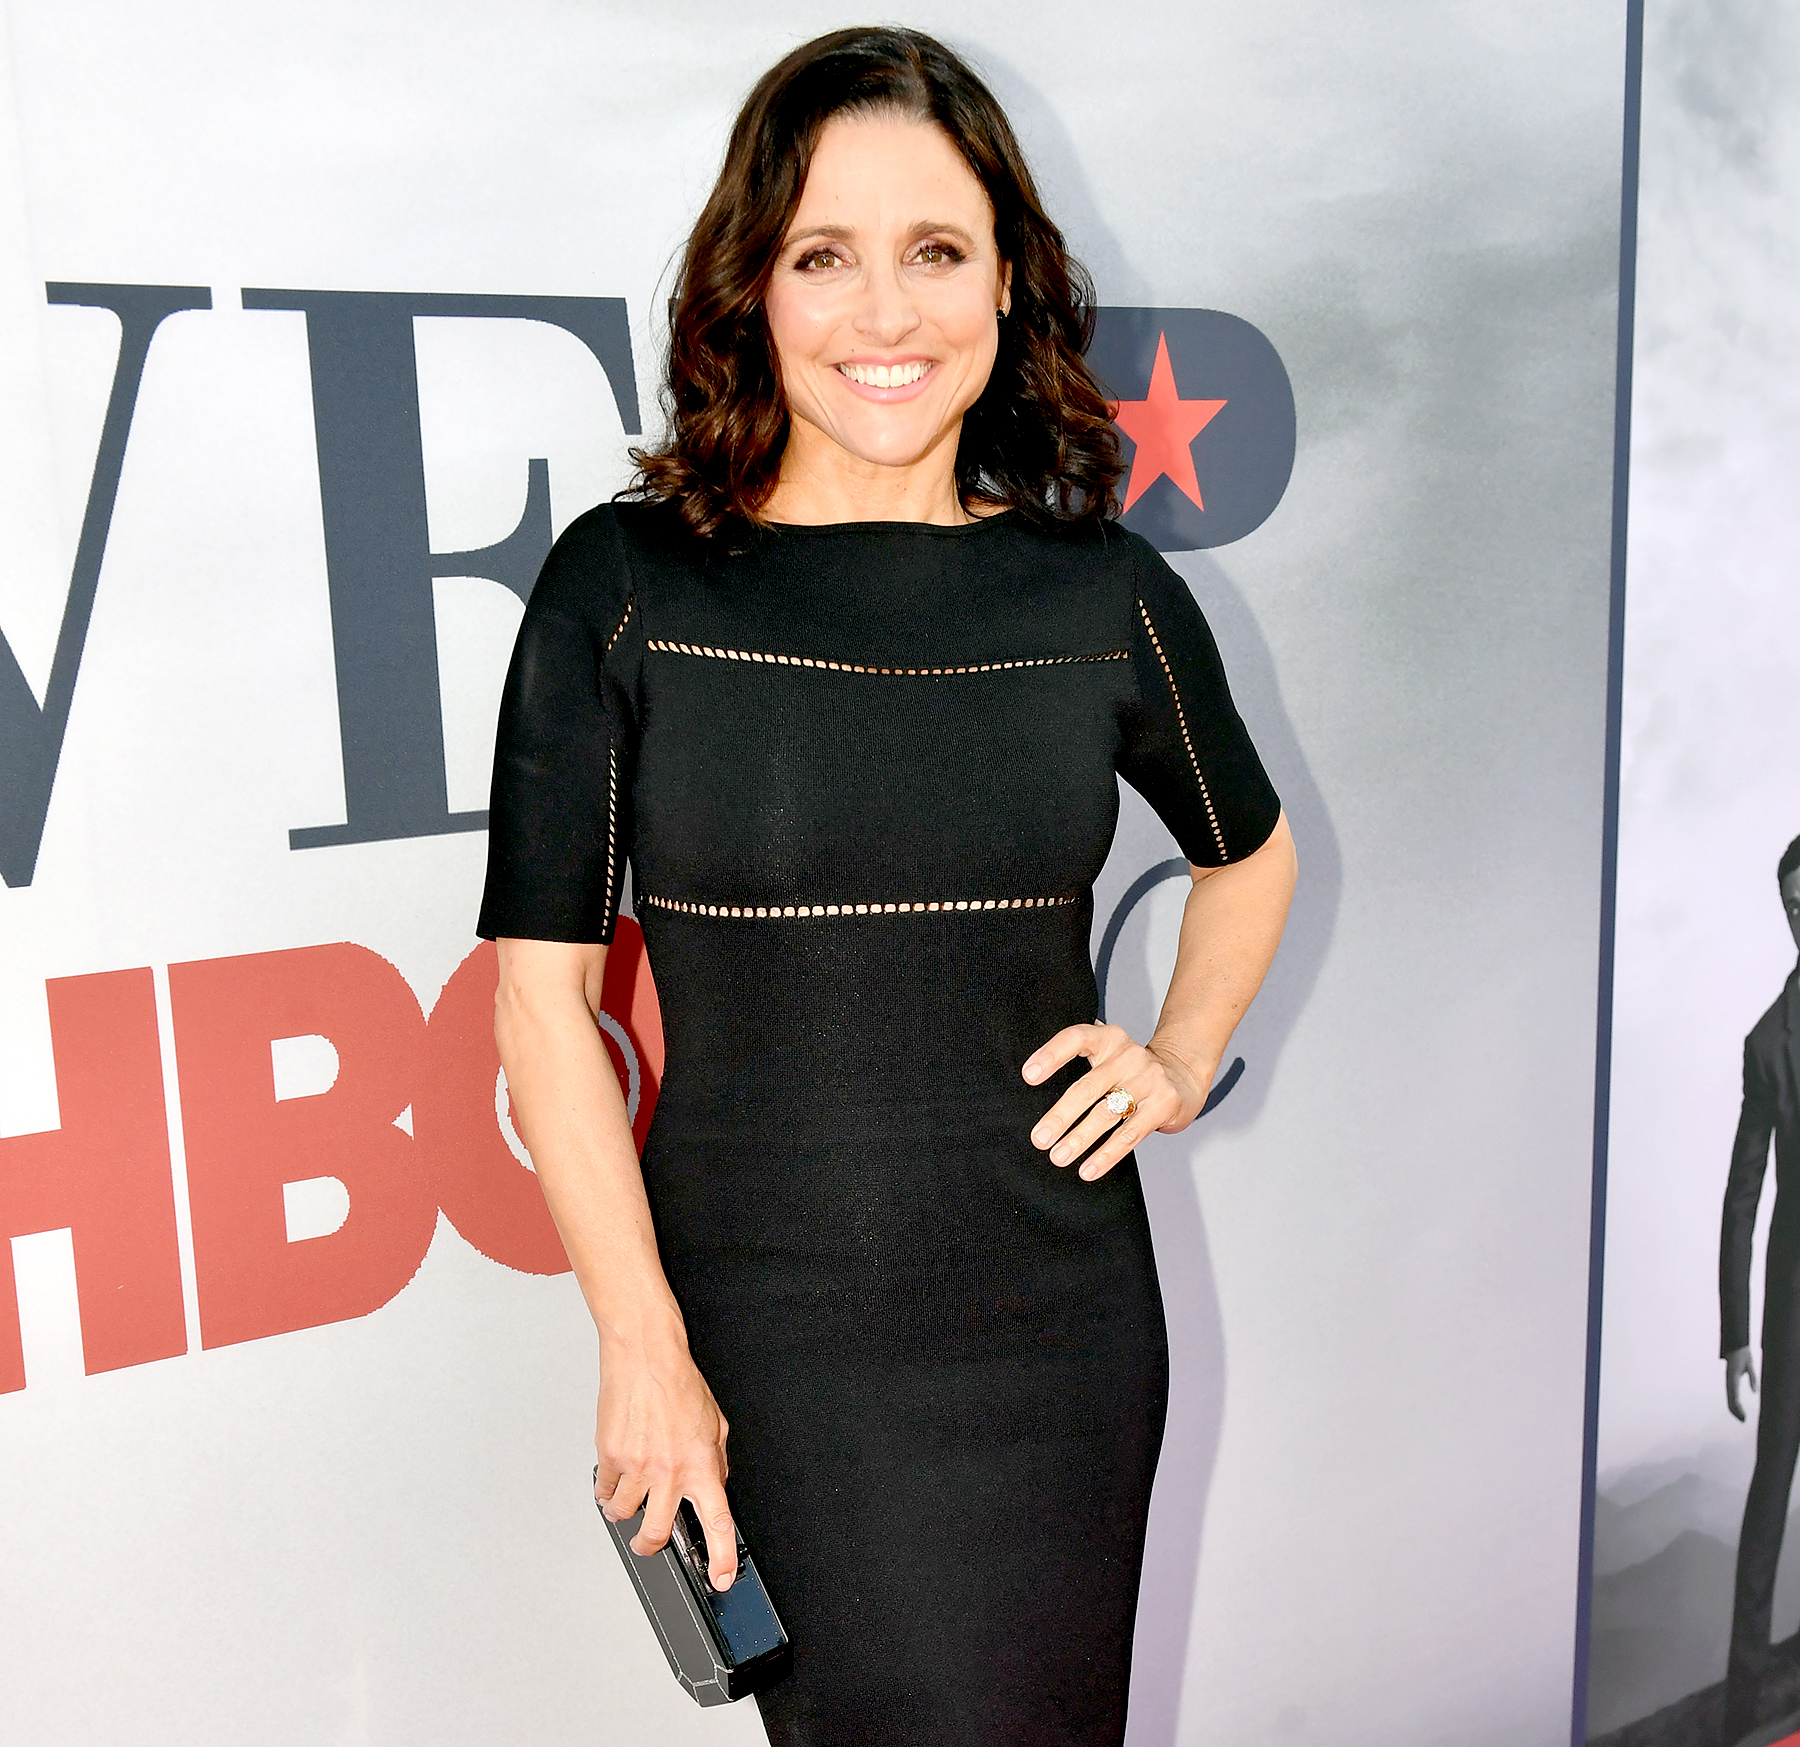 Julia Louis-Dreyfus reveals she had surgery for breast cancer